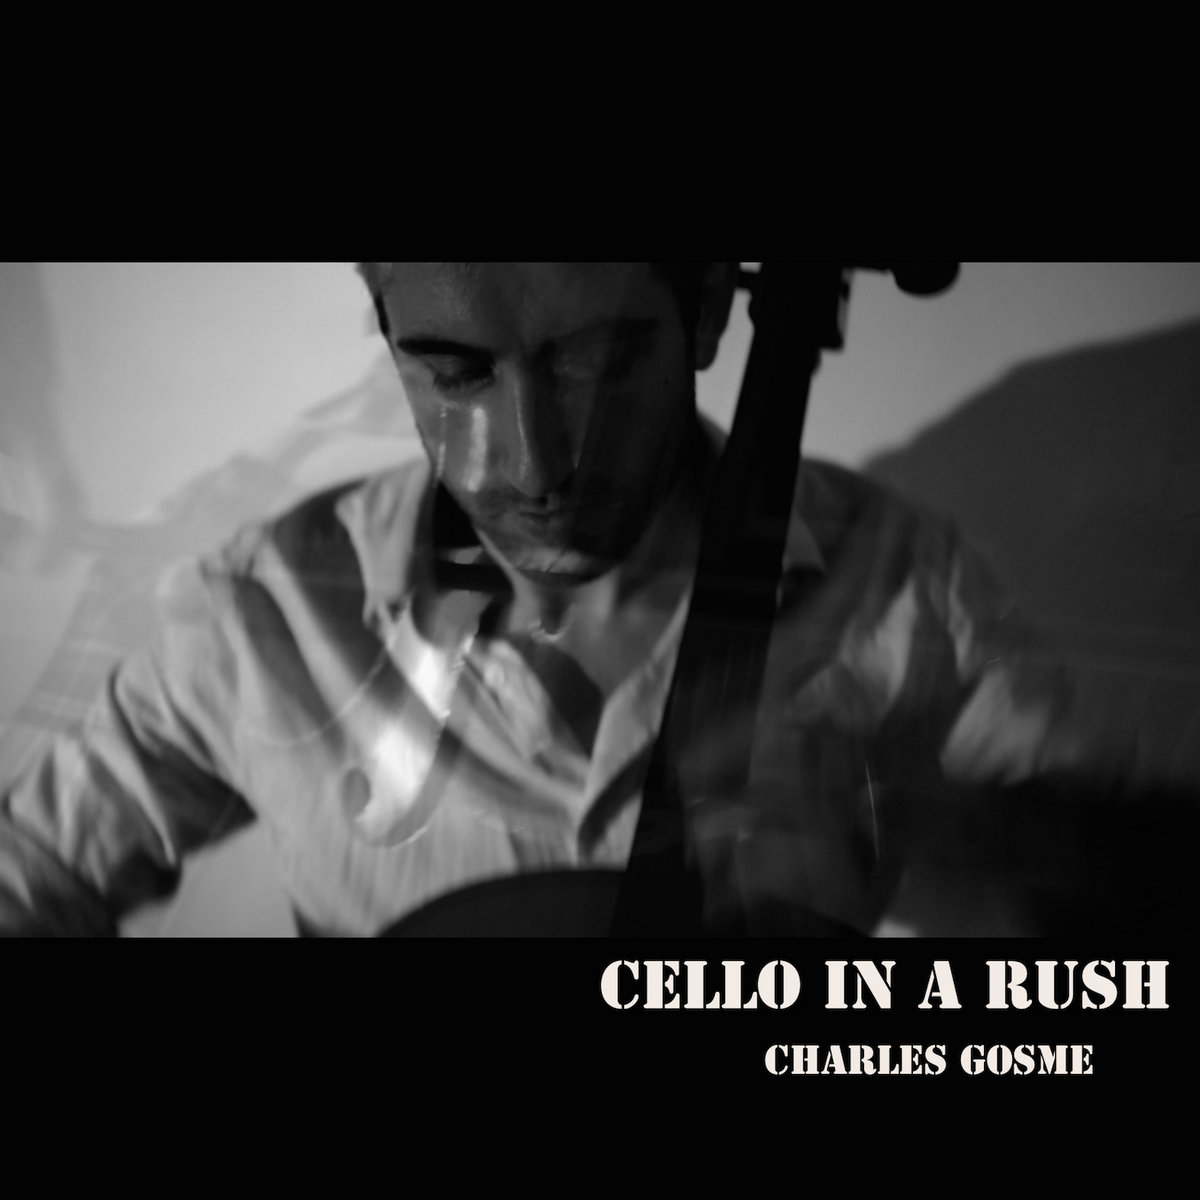 Cello in a Rush by Charles Gosme